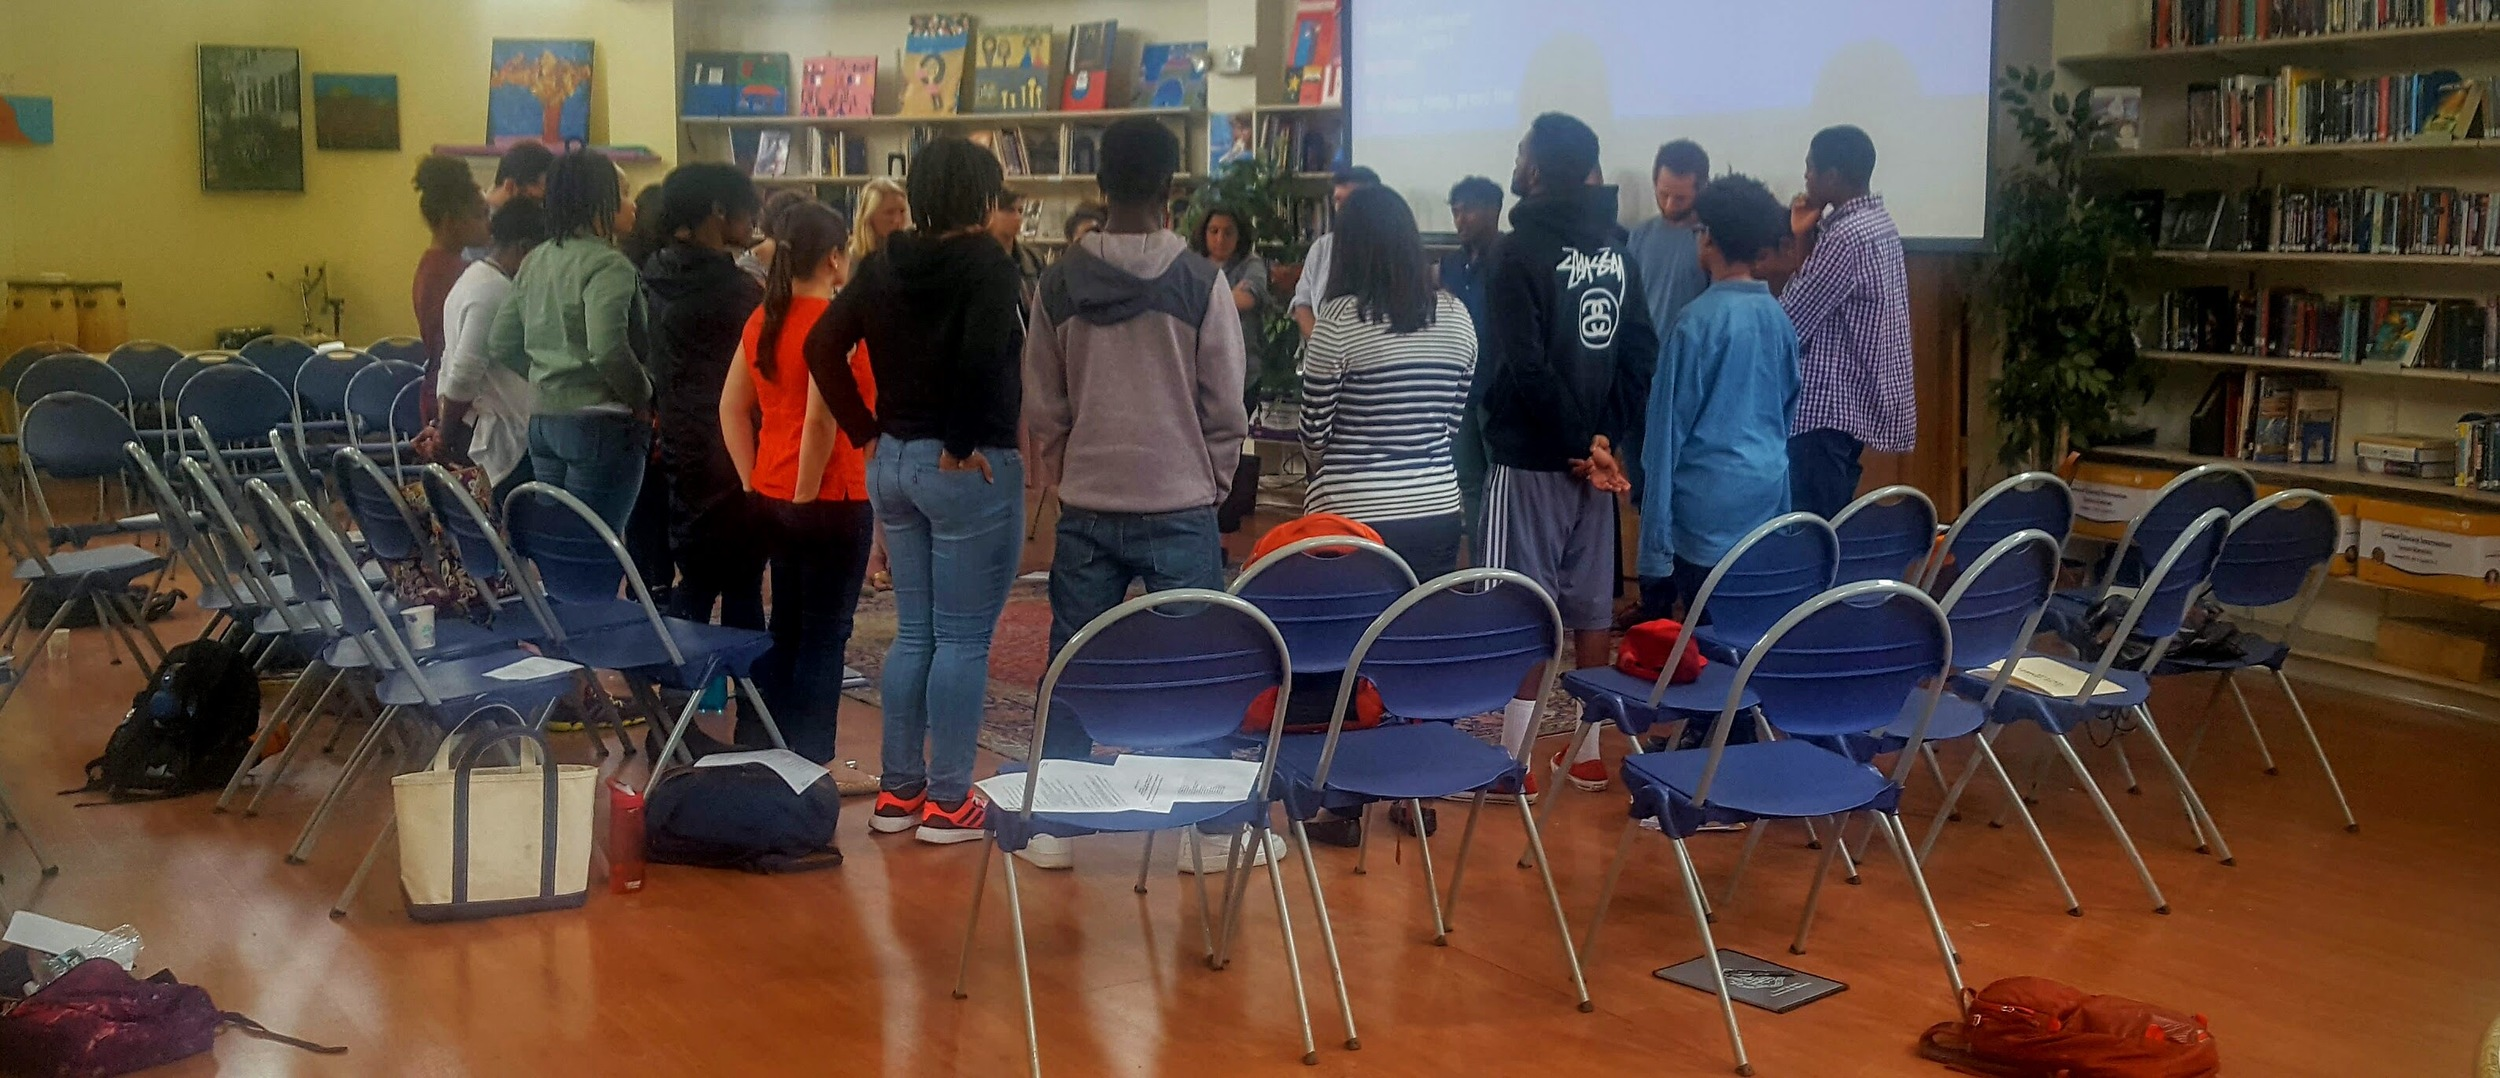 Teaching specialists during a mindfulness activity reflecting on recent events during workshop.